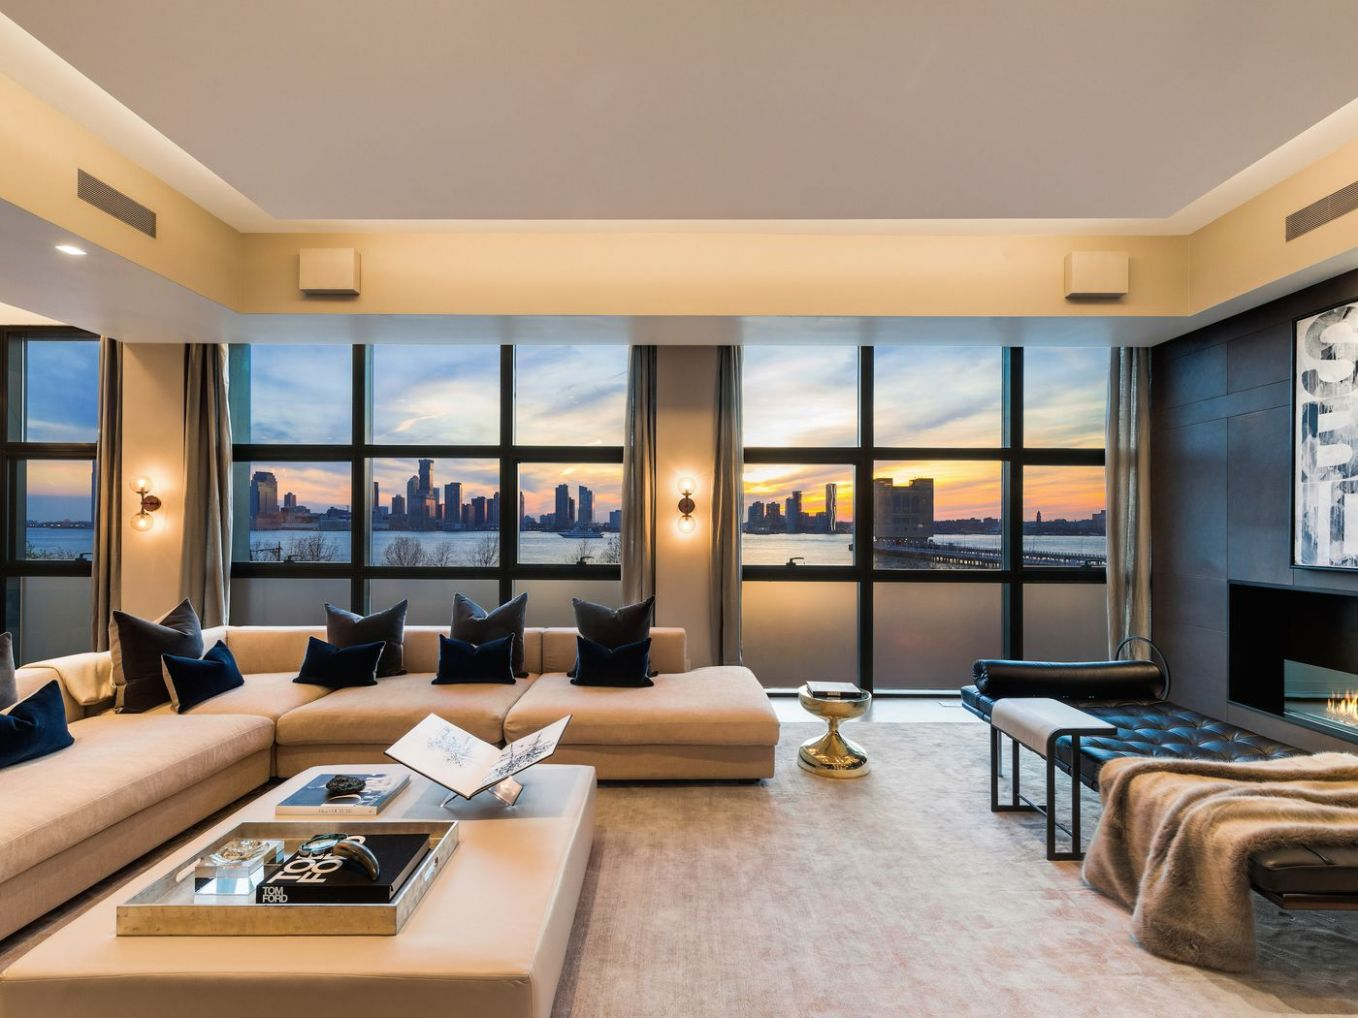 Pin on New York apartment design interiors